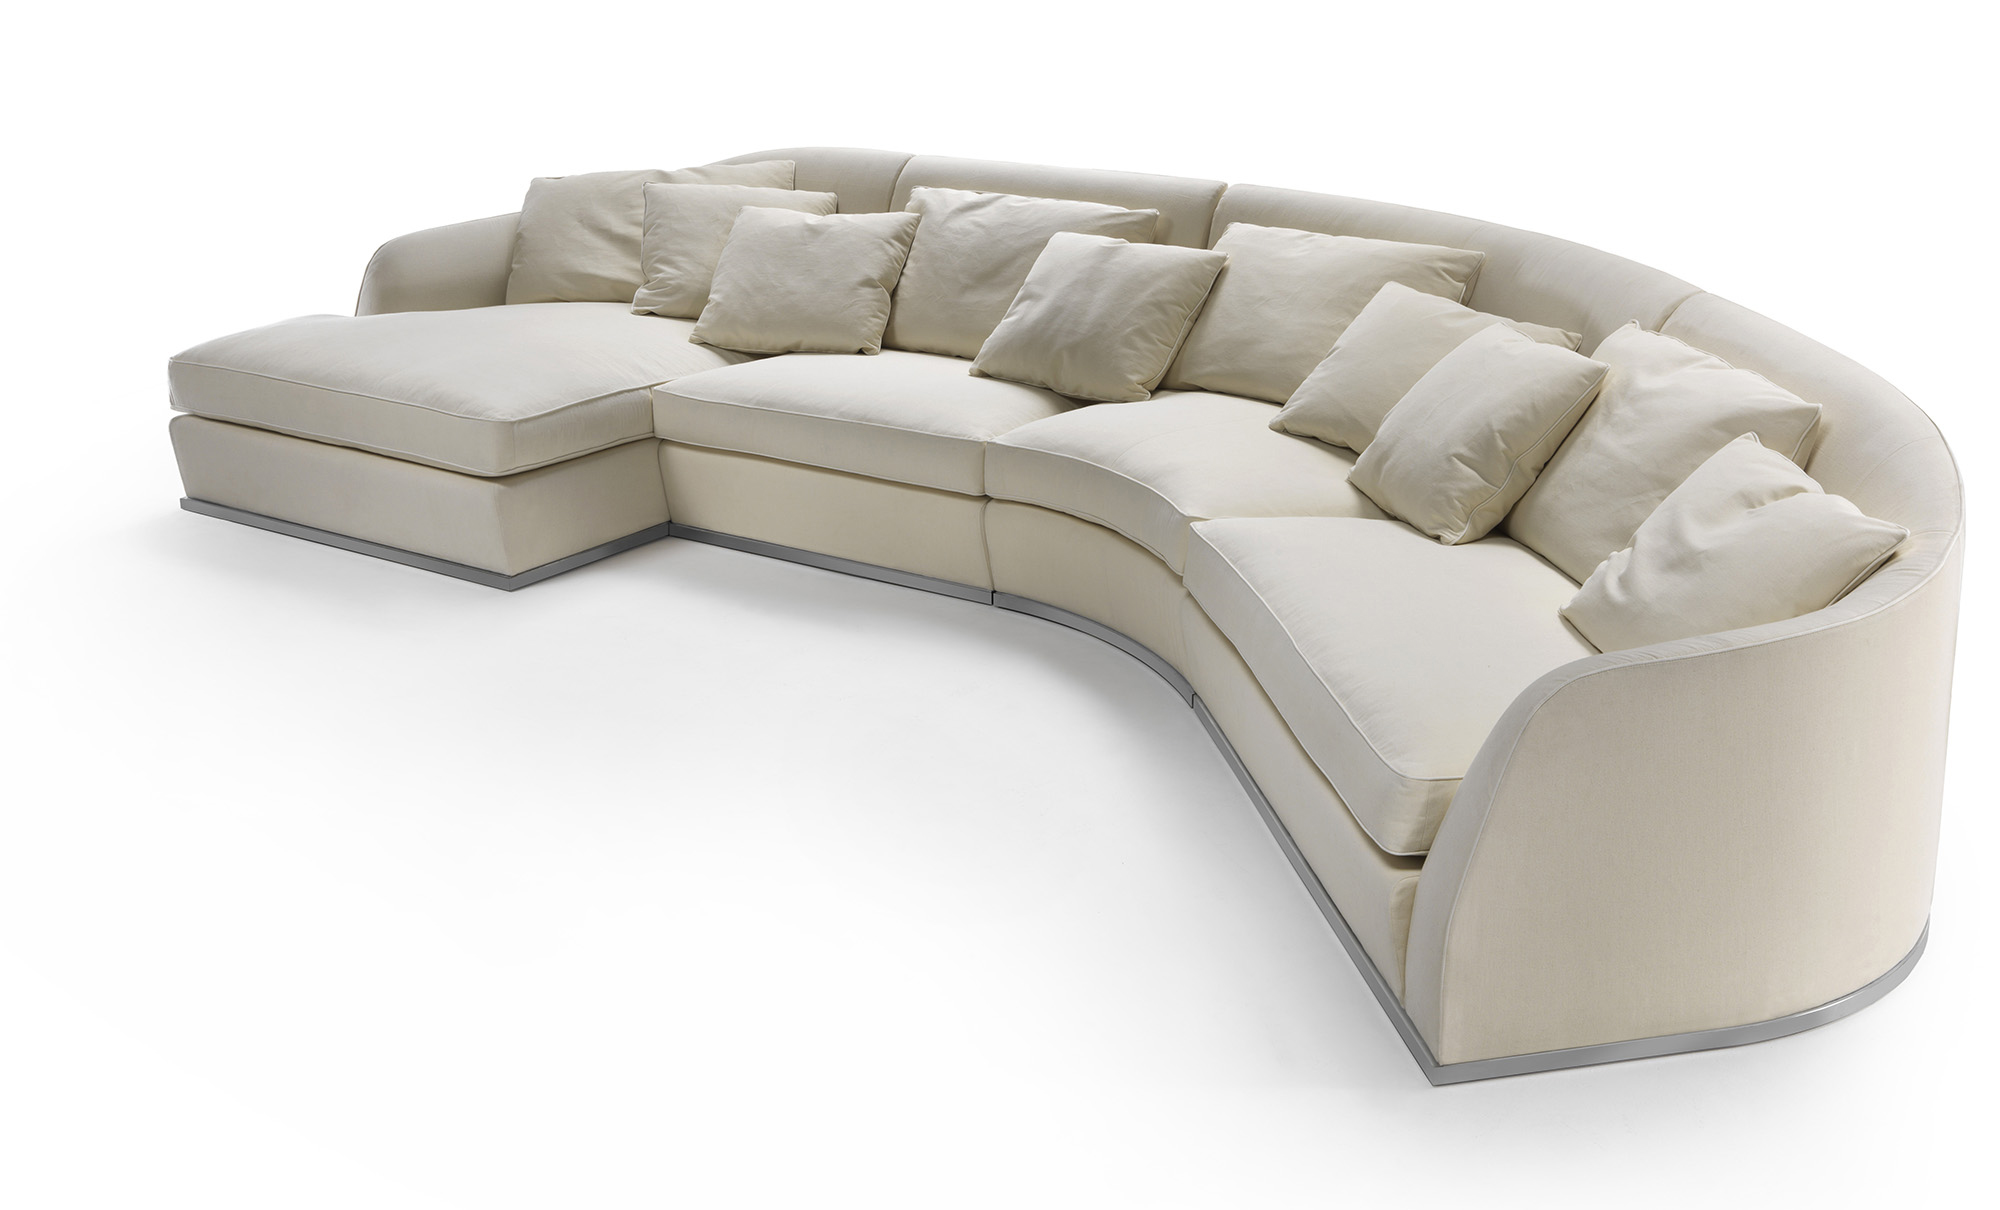 Modular Sofa Alfred Modular Sofa By Flexform Mood Fanuli Furniture